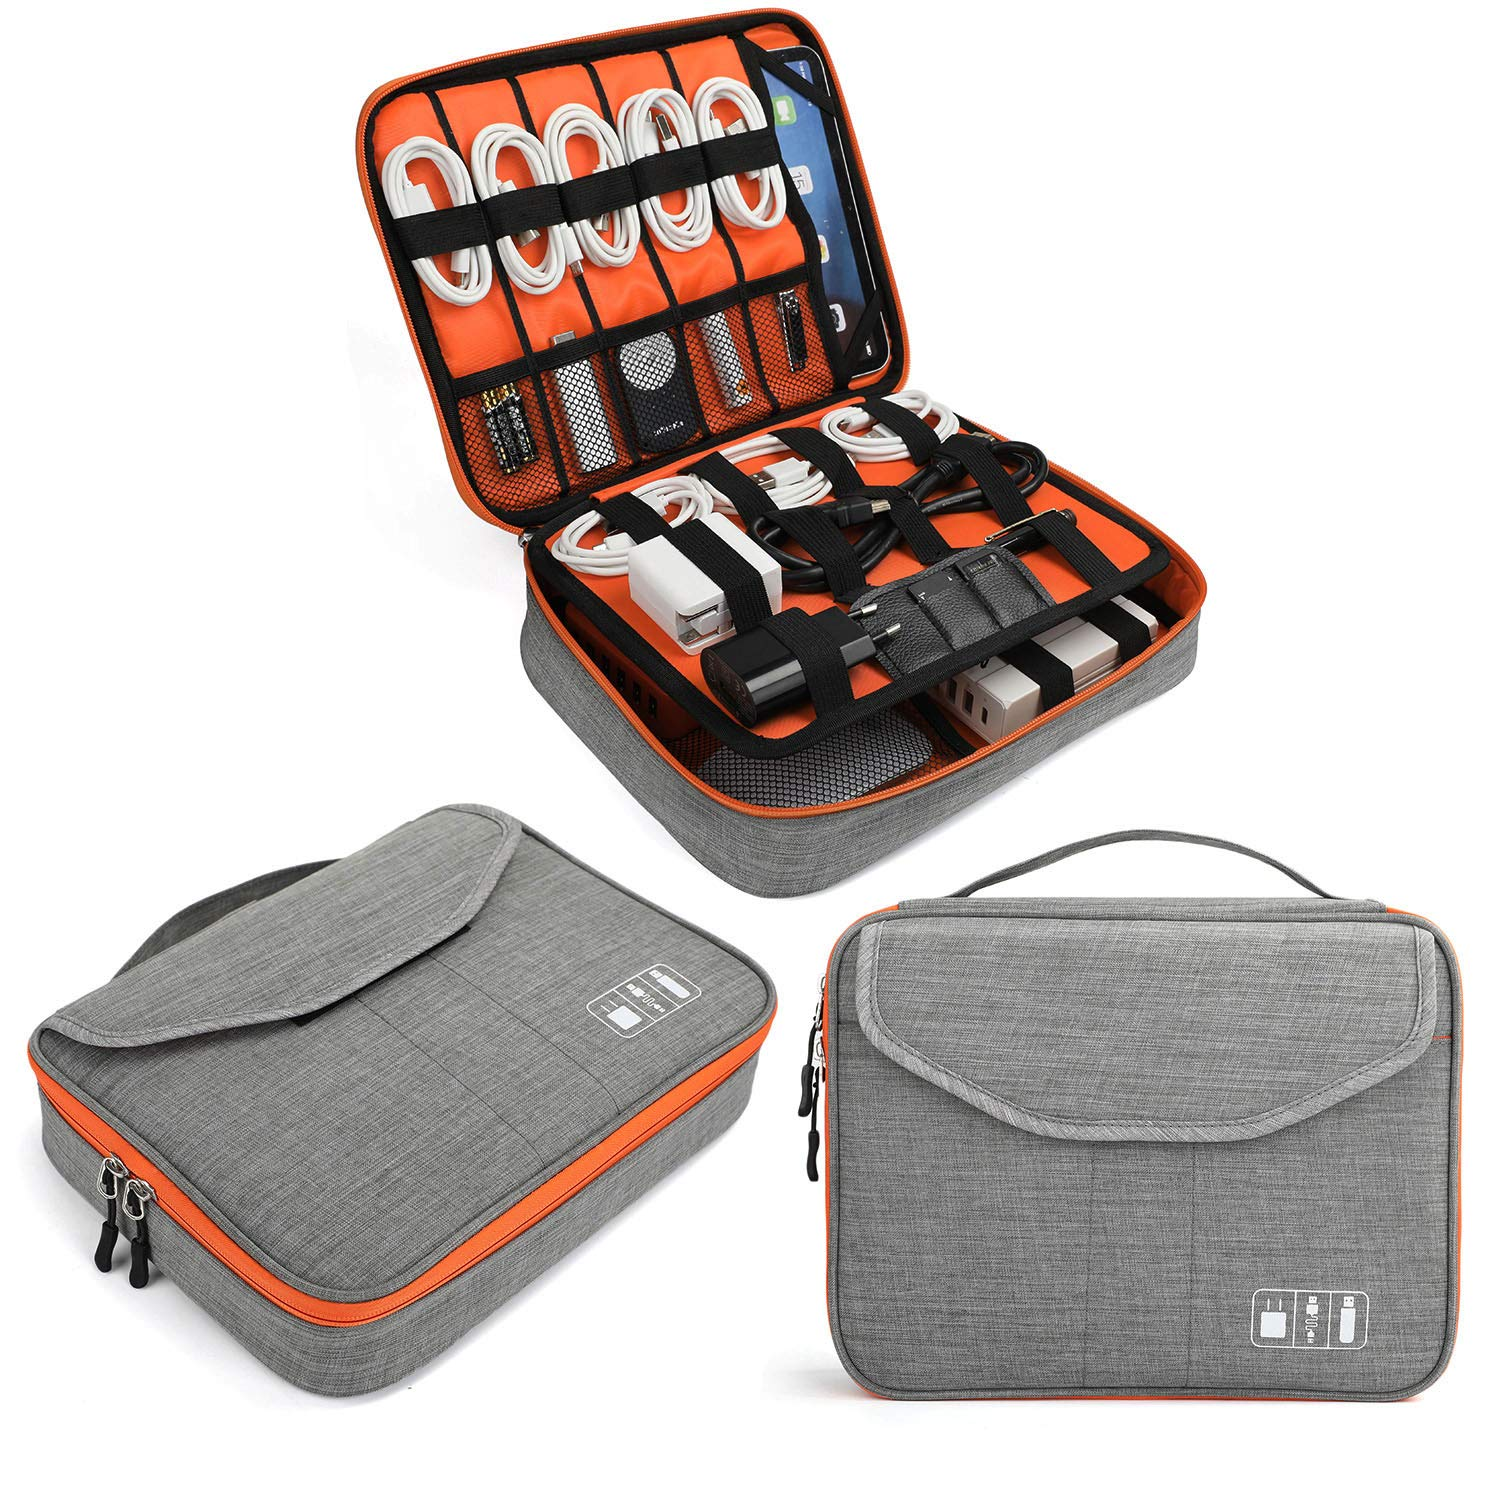 Electronics Bag, Jelly Comb Electronic Accessories Travel Cable Organizer Waterproof Cord Storage Bag for Cables, iPad (Up to 11''),Power Bank, USB Flash Drive and More-(Orange and Gray, 11in) by Jelly Comb